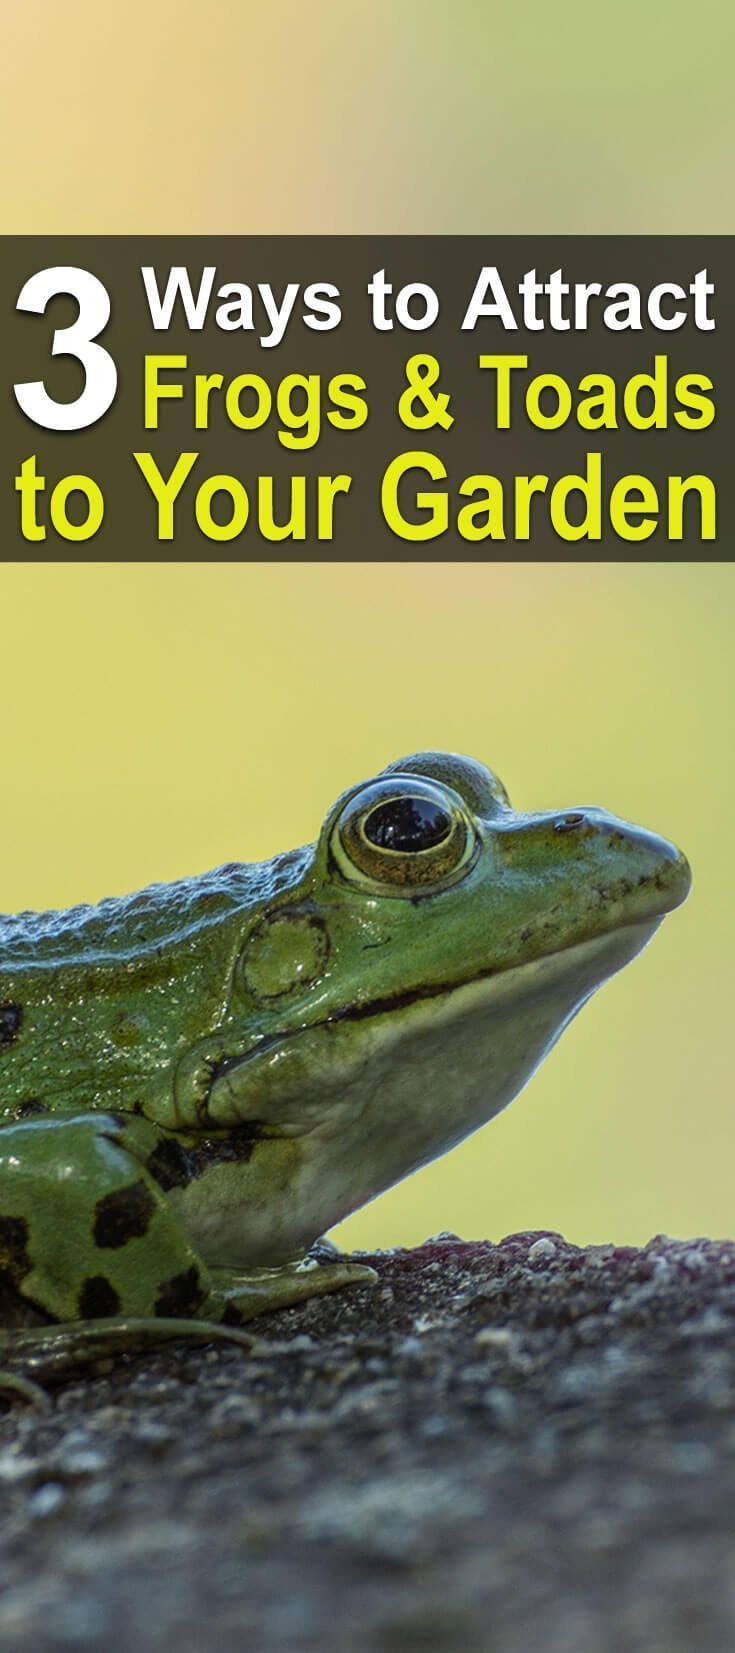 how to keep frogs away from garden